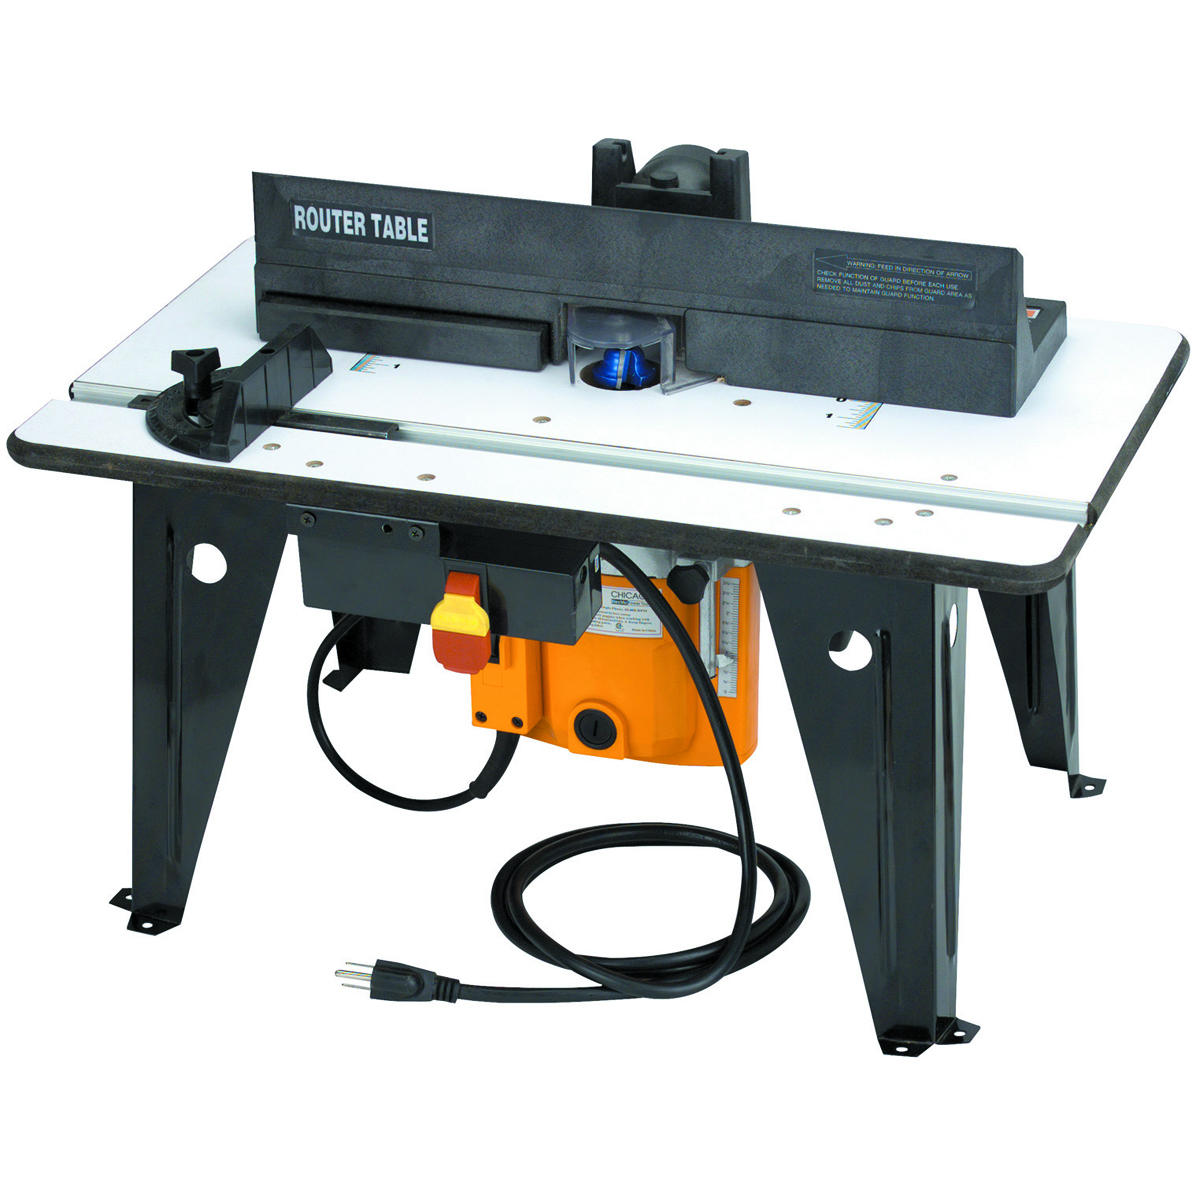 Benchtop router table with 1 34 hp router greentooth Images